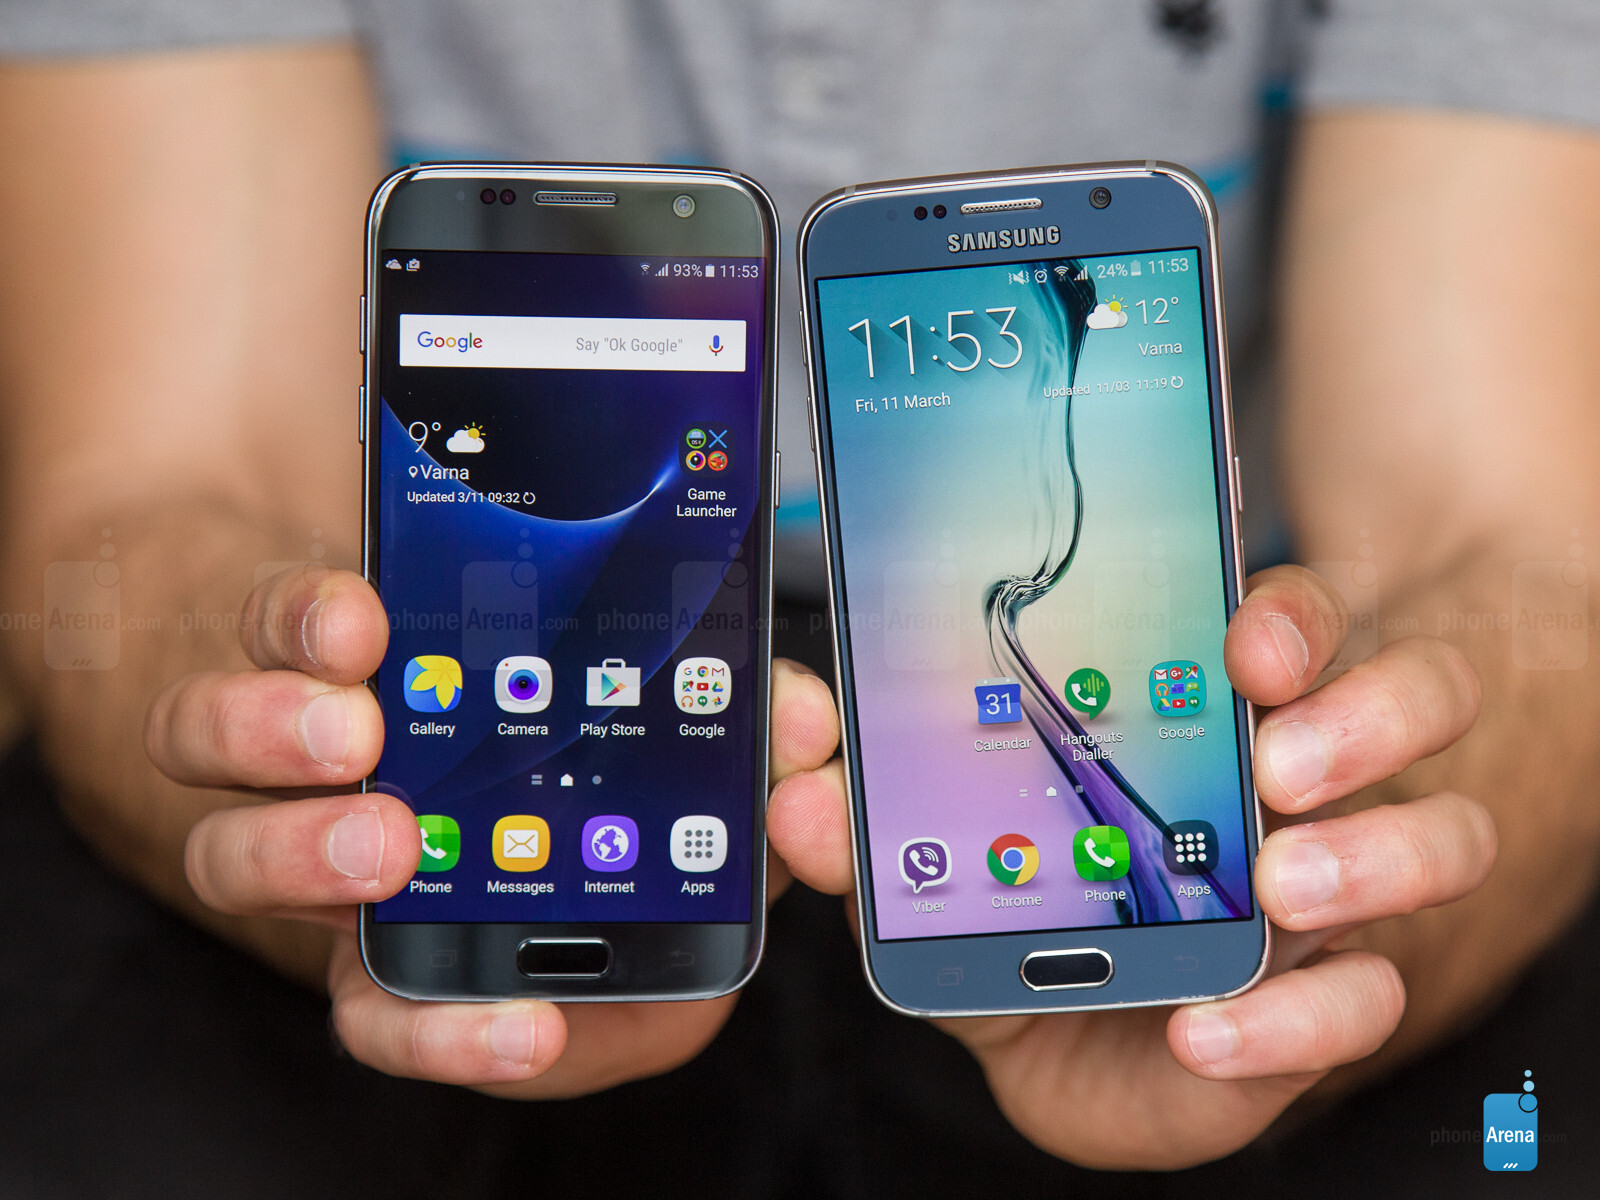 Samsung Galaxy S6 vs Apple iPhone 6 vs Sony Xperia Z3 Compact - sadoqamypyve.cf